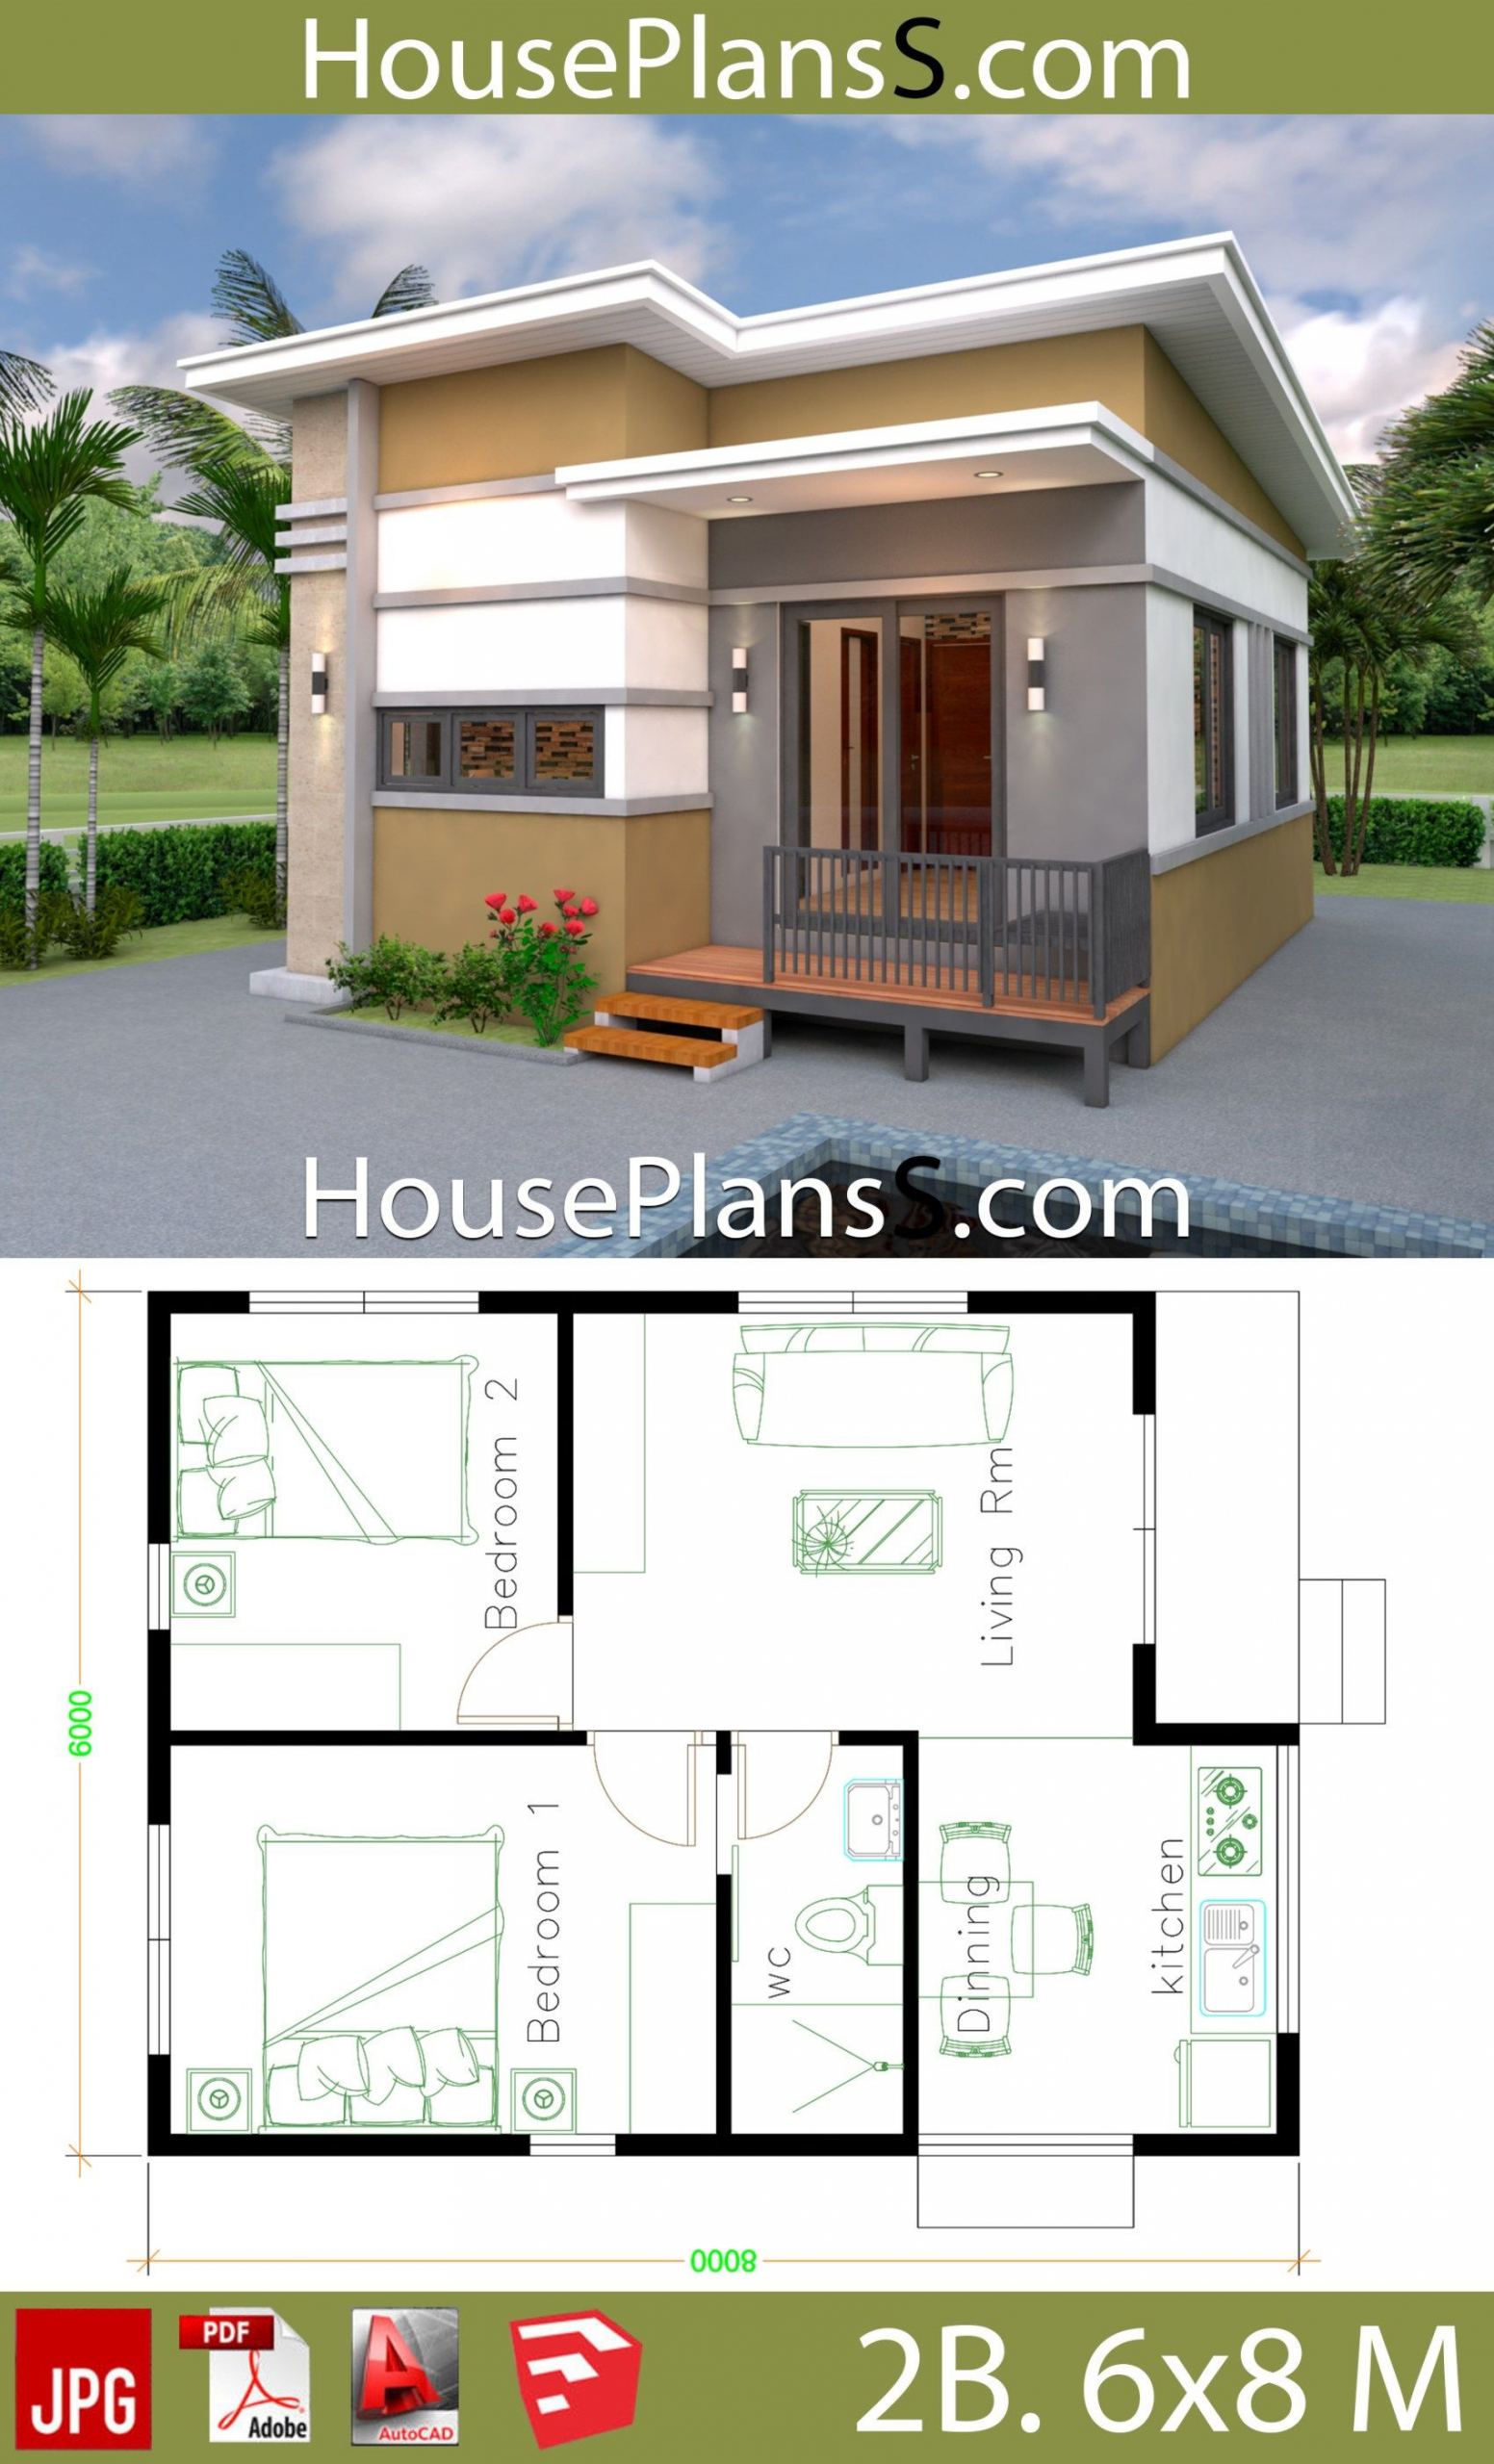 Fresh Small 2 Bedroom House Plans Small House Design Plans 6x8 With 2 Bedrooms In 2020 Small House Design Plans House Plans 2 Bedroom House Plans